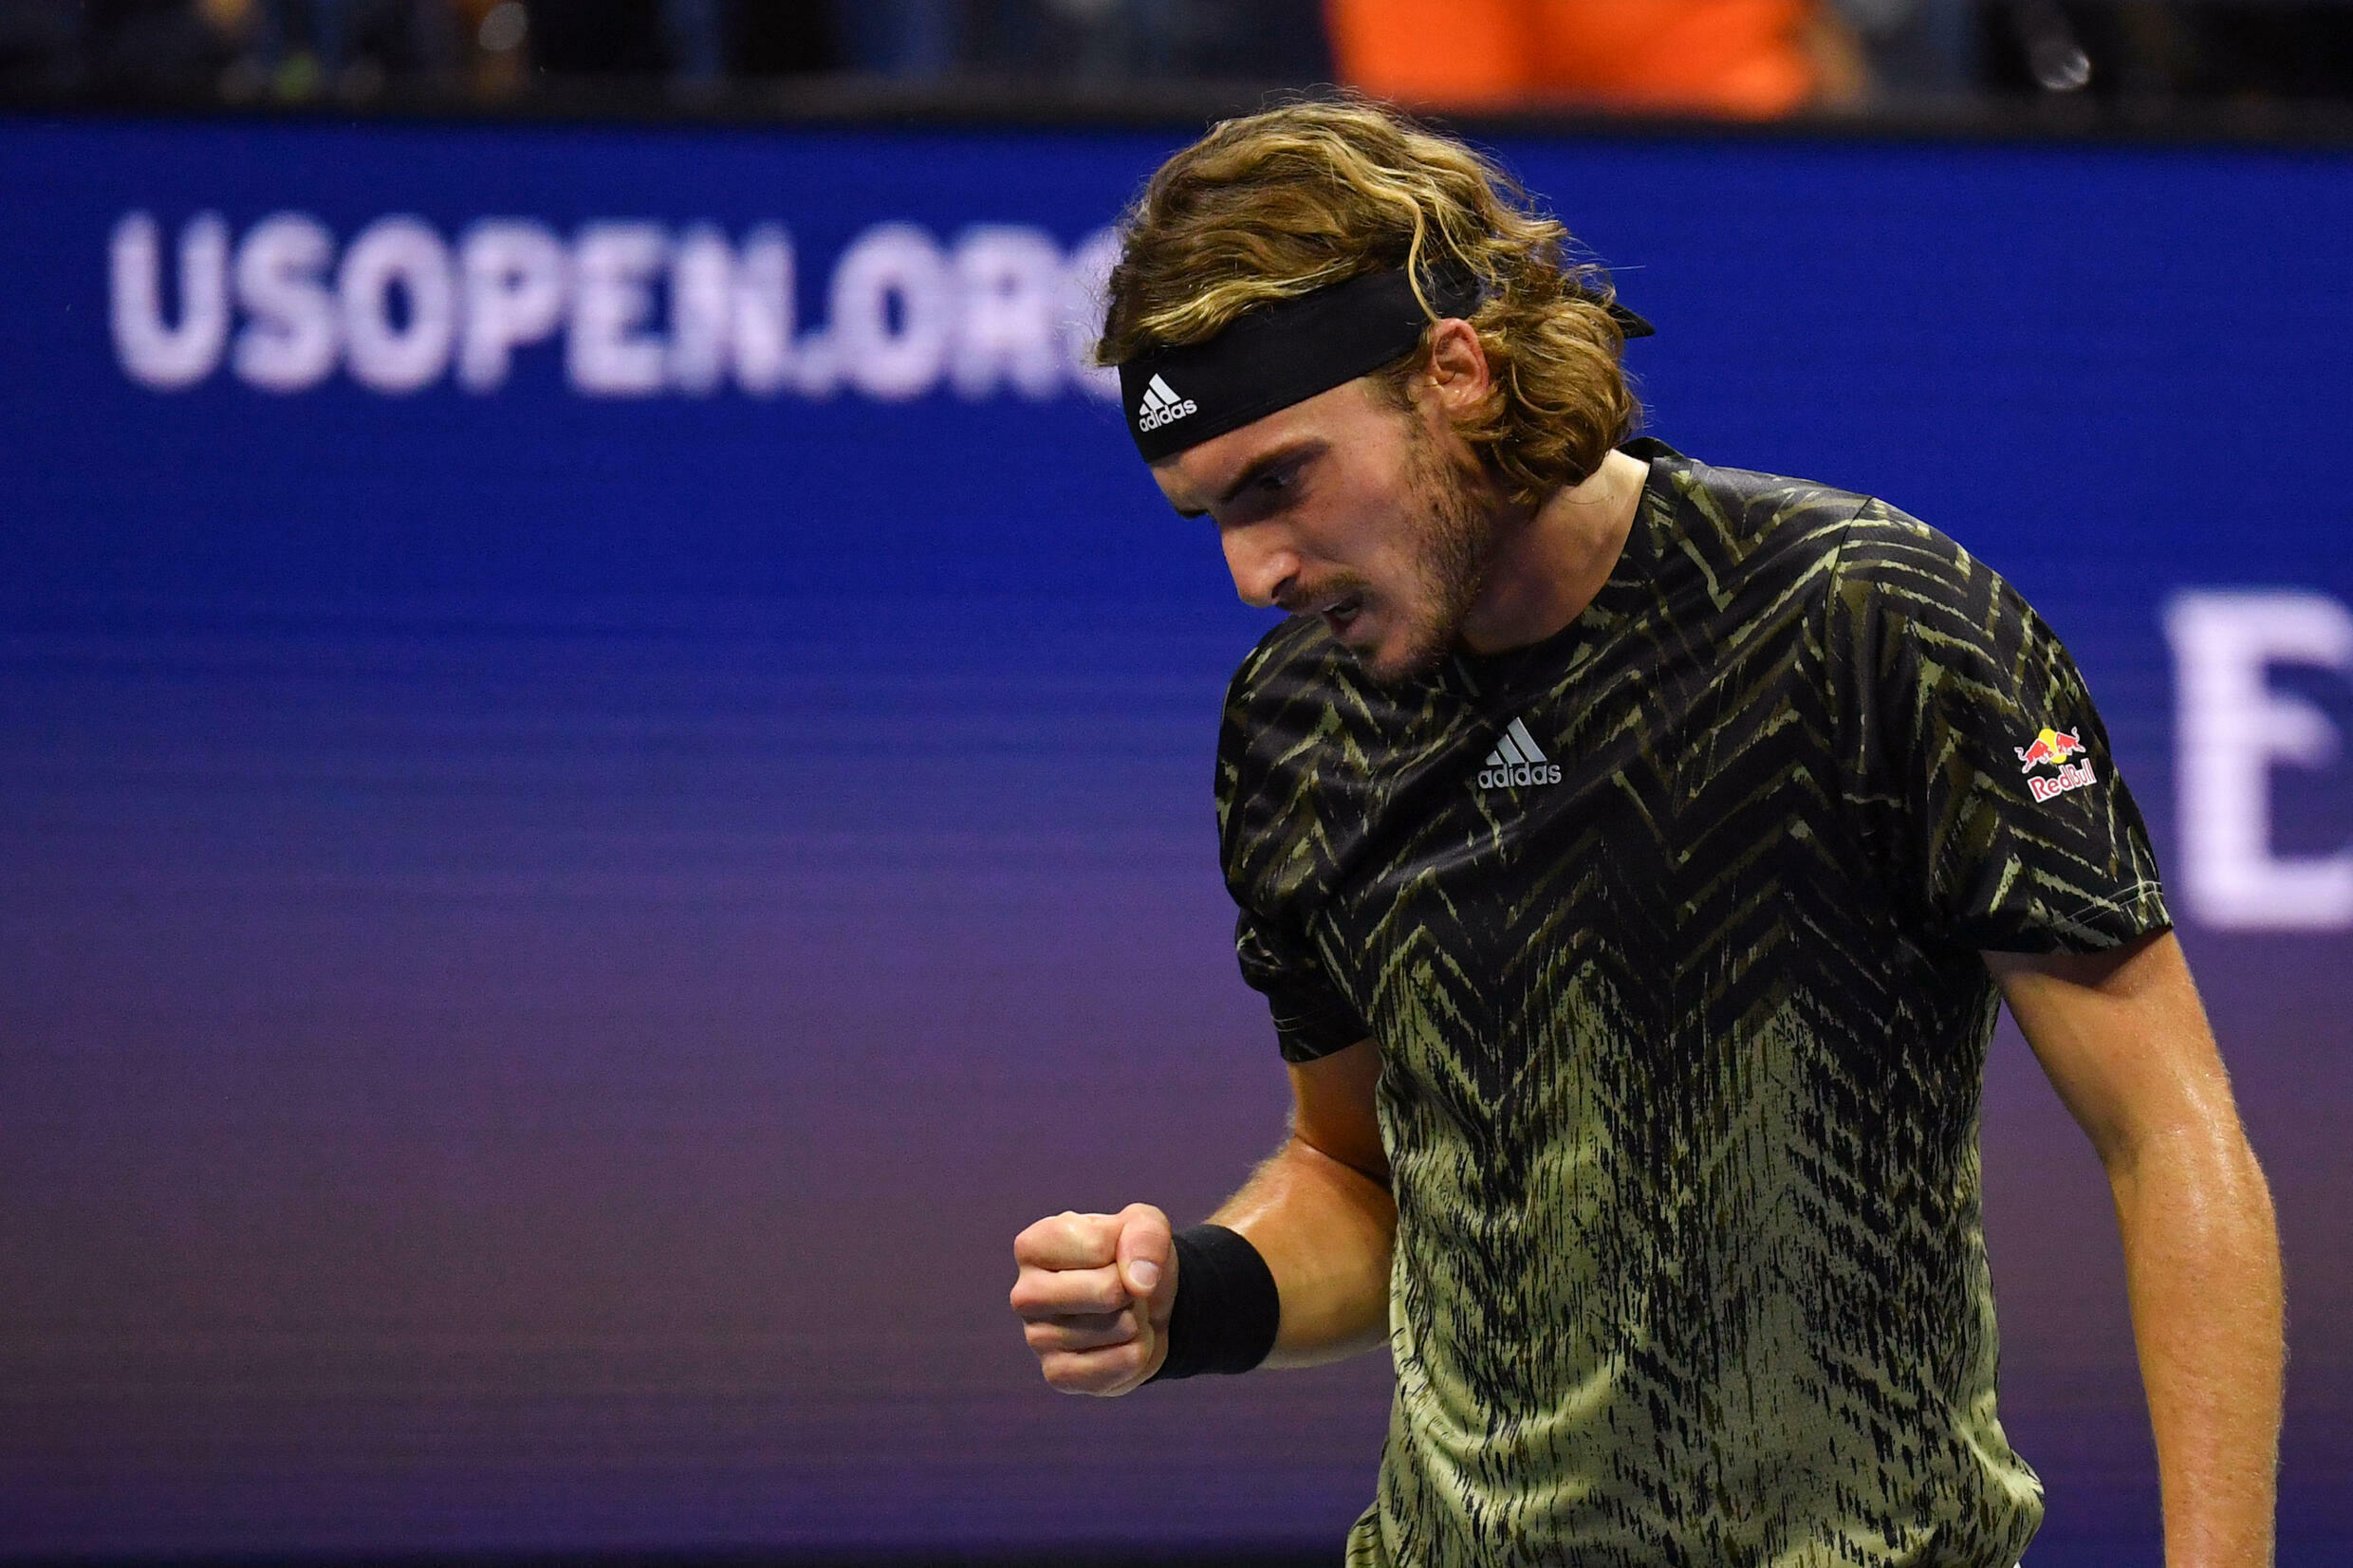 Greece's Stefanos Tsitsipas says he follows rules about toilet breaks that have no time limits but his latest victim sees a sportsmanship issue in the long trips